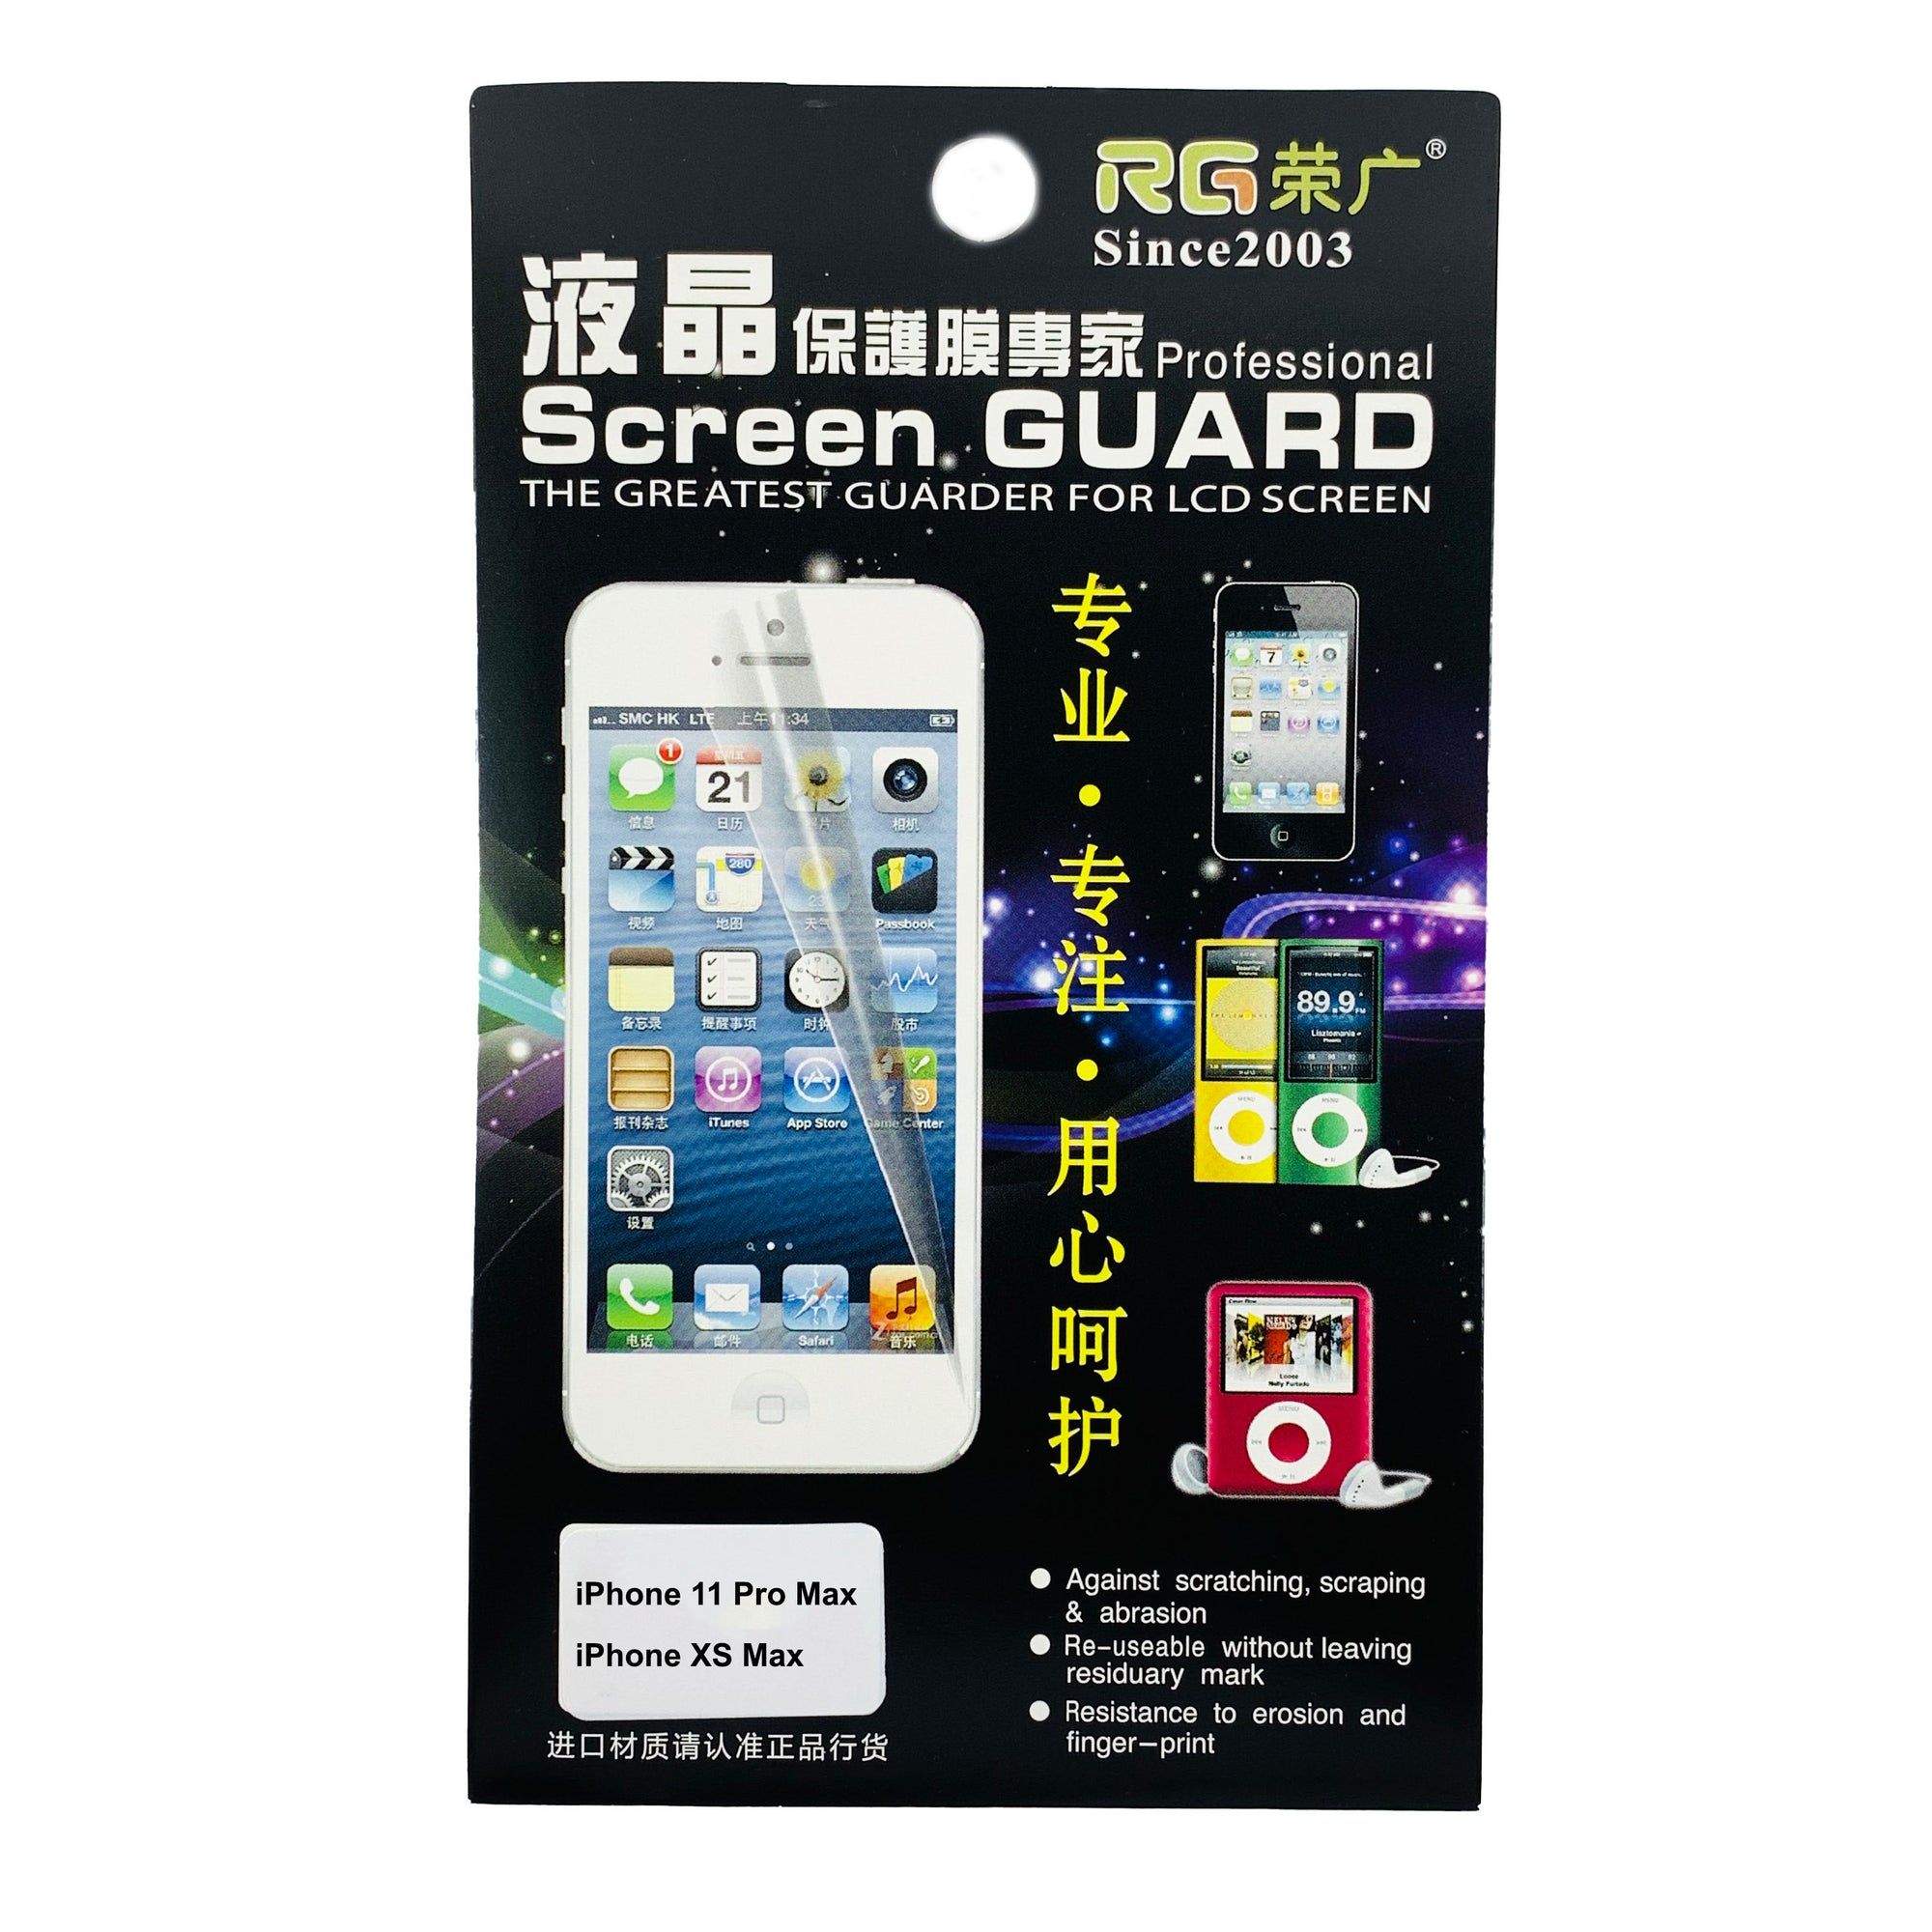 RG Professional Soft Film Screen Protector for iPhone 11 Pro Max / XS Max (Clear) 2-PACK